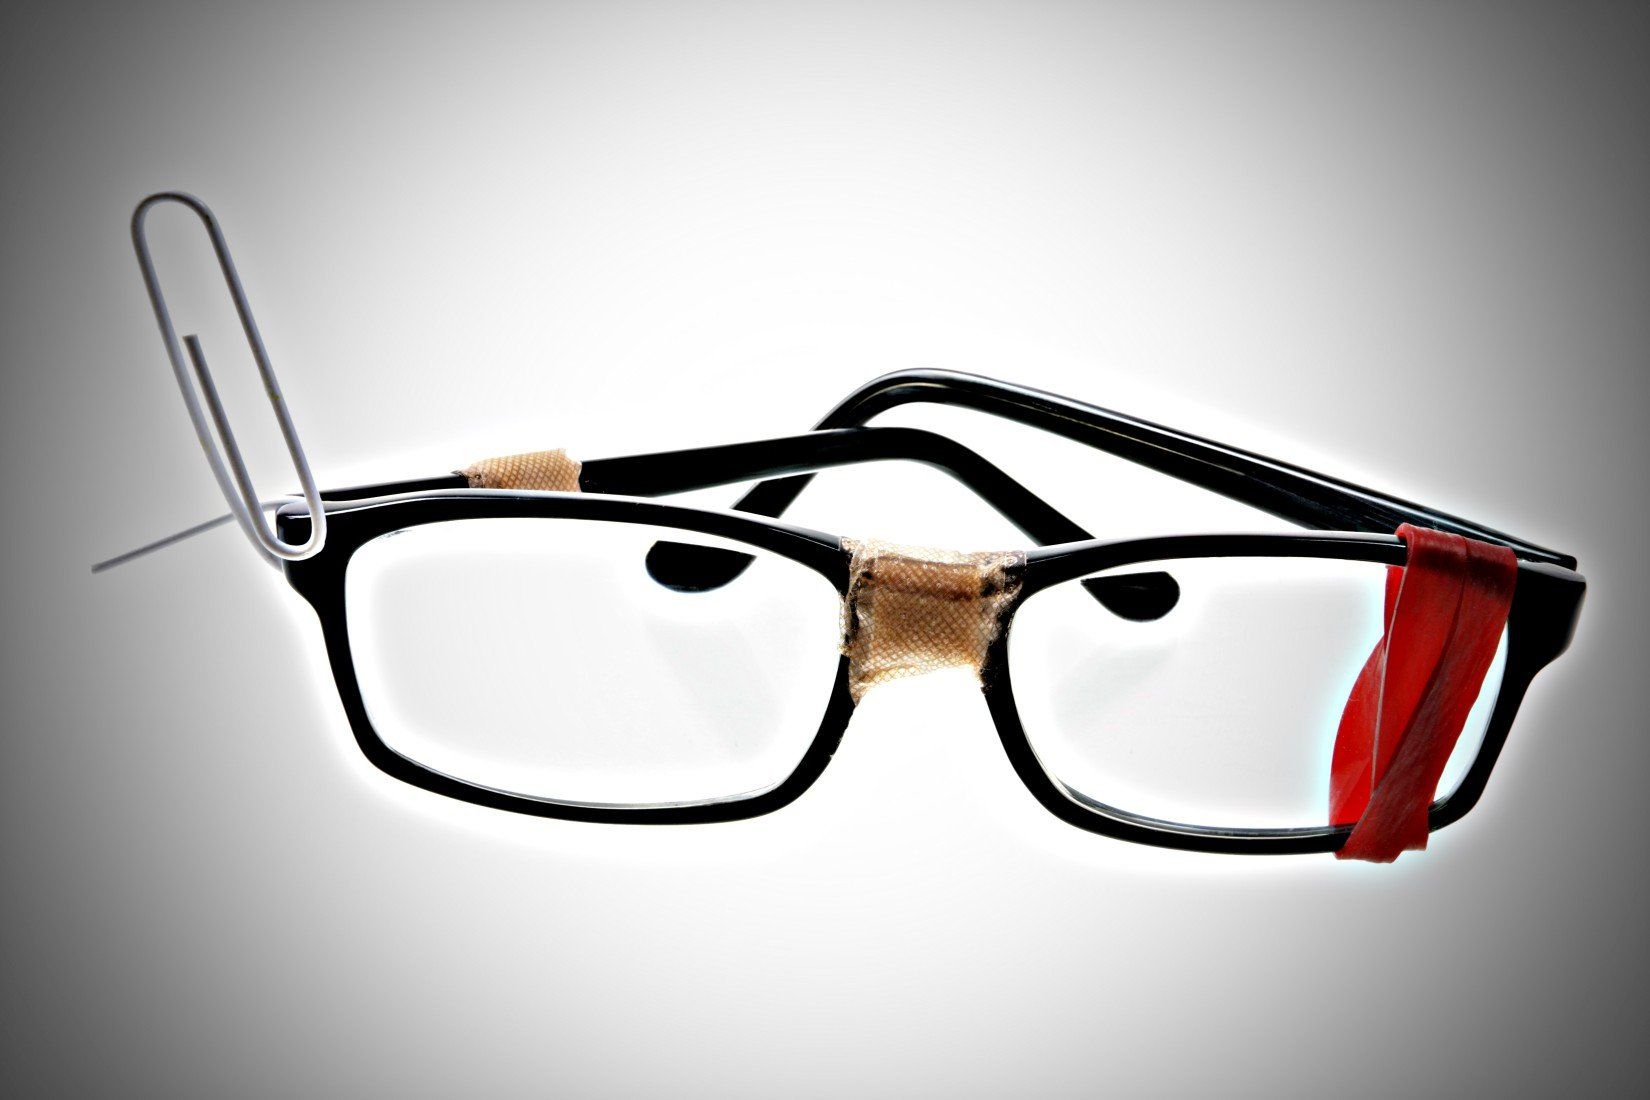 e9fce02a6dba Spectacles Repair at Visio Optical  The only one in Singapore and SE Asia